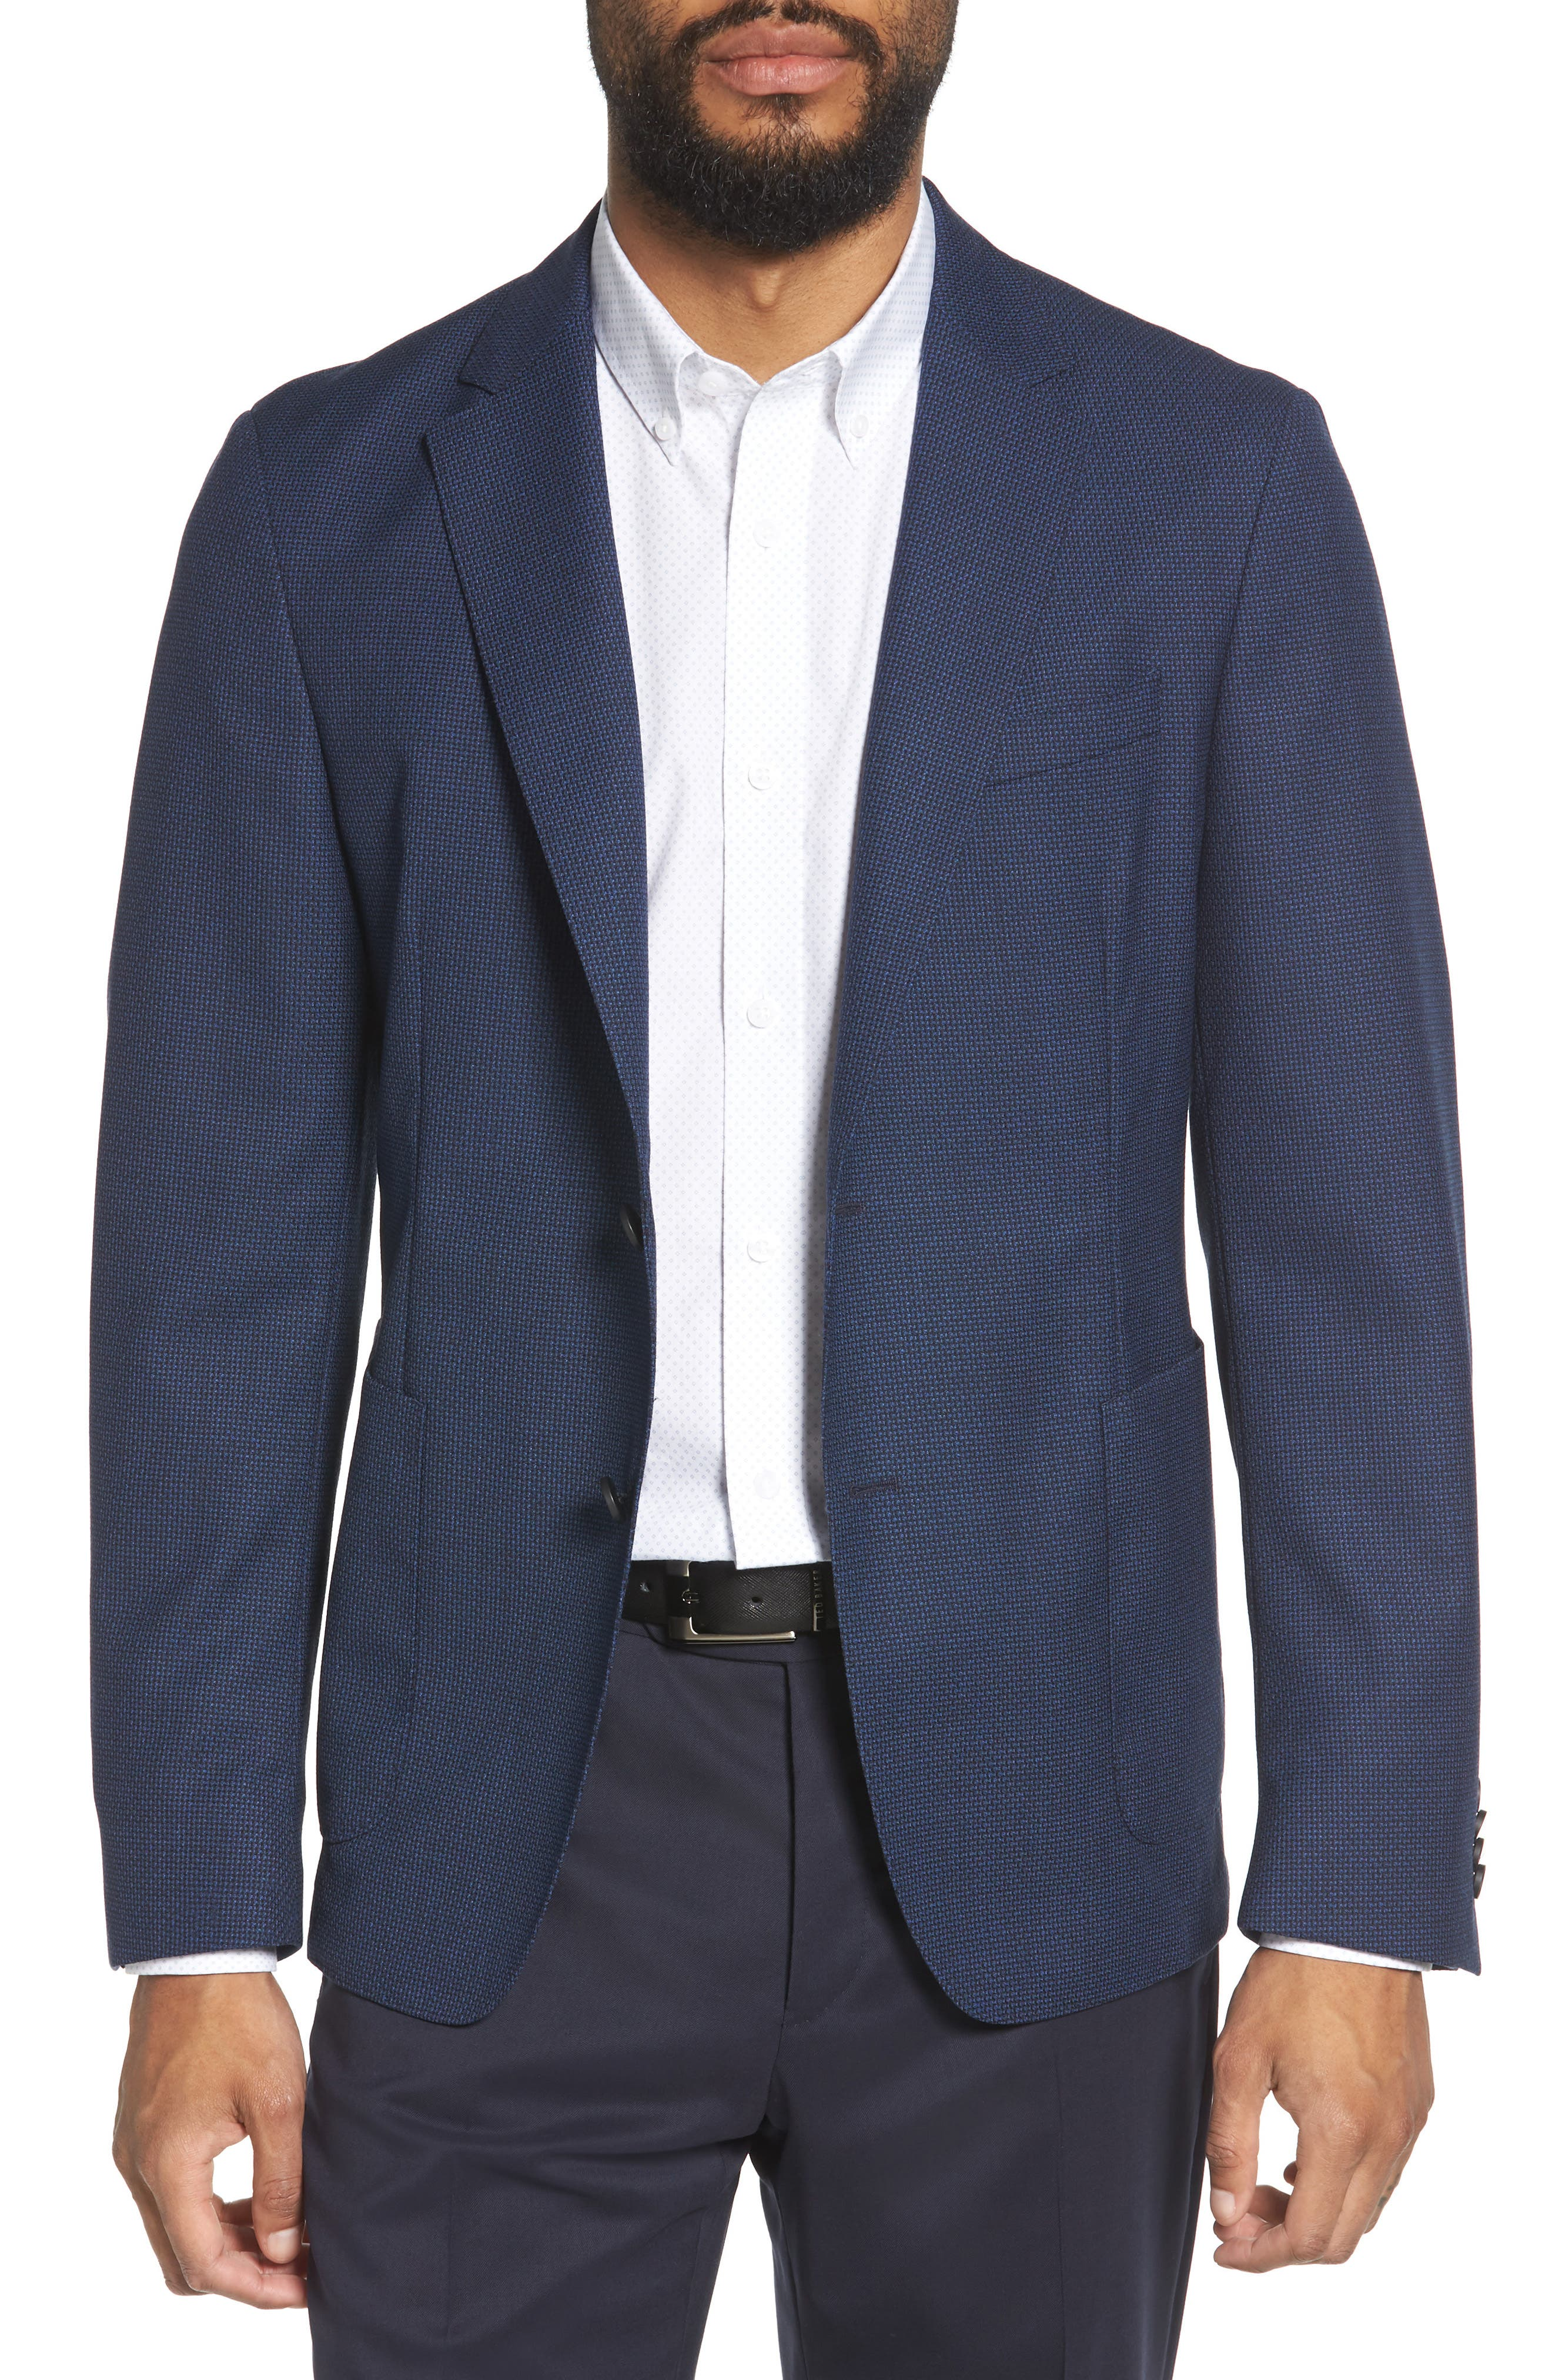 Nold Trim Fit Wool Blazer,                             Main thumbnail 1, color,                             BLUE